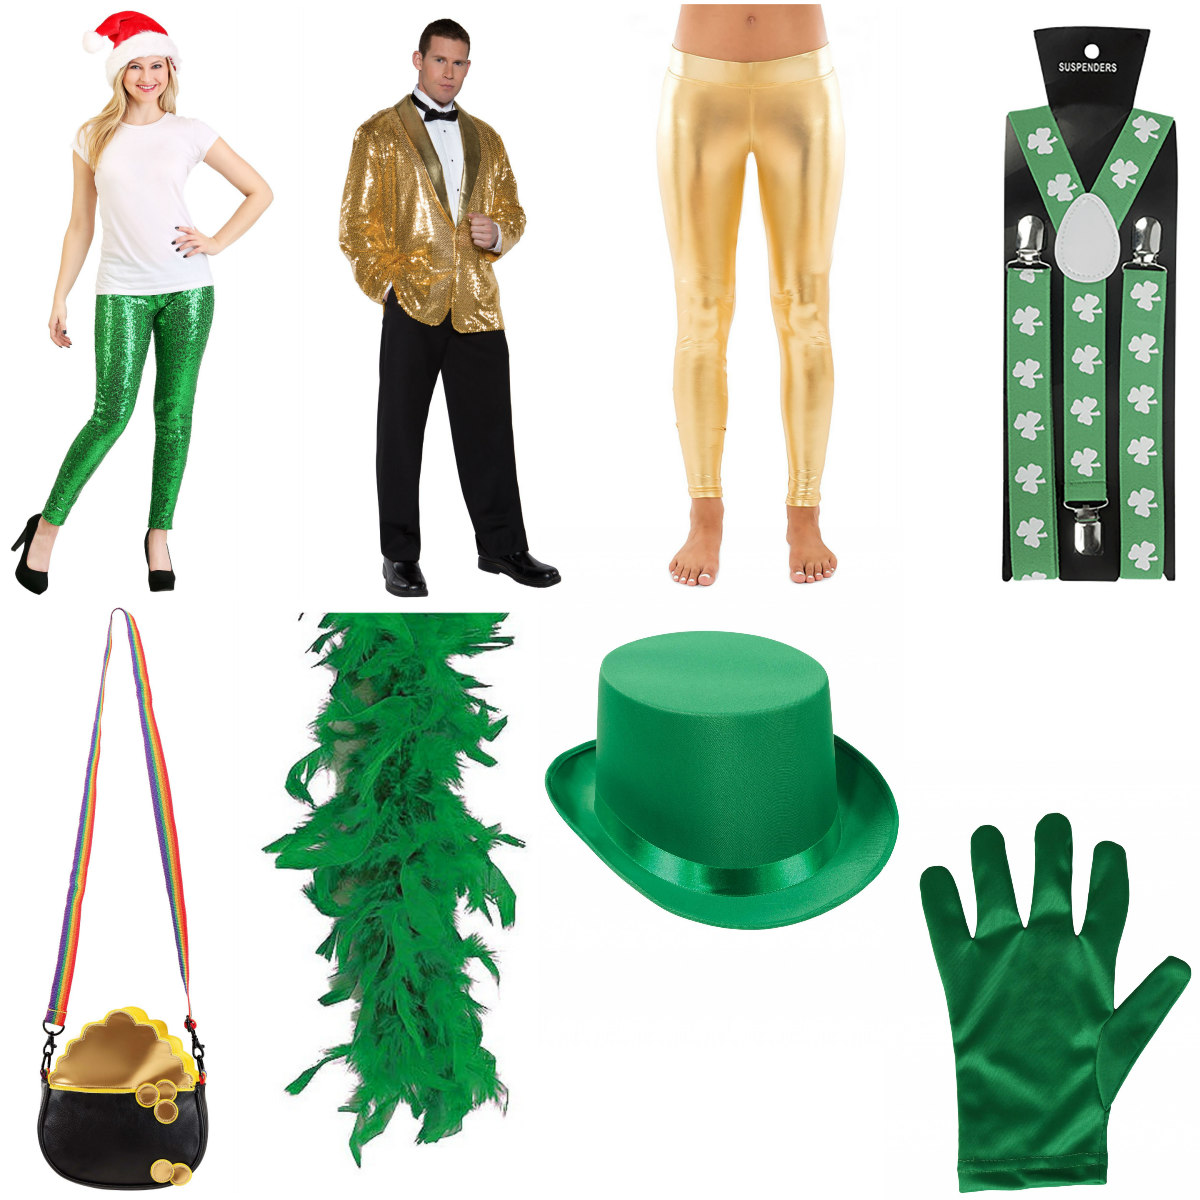 Accessories for St. Patrick's Day Bar Hopping